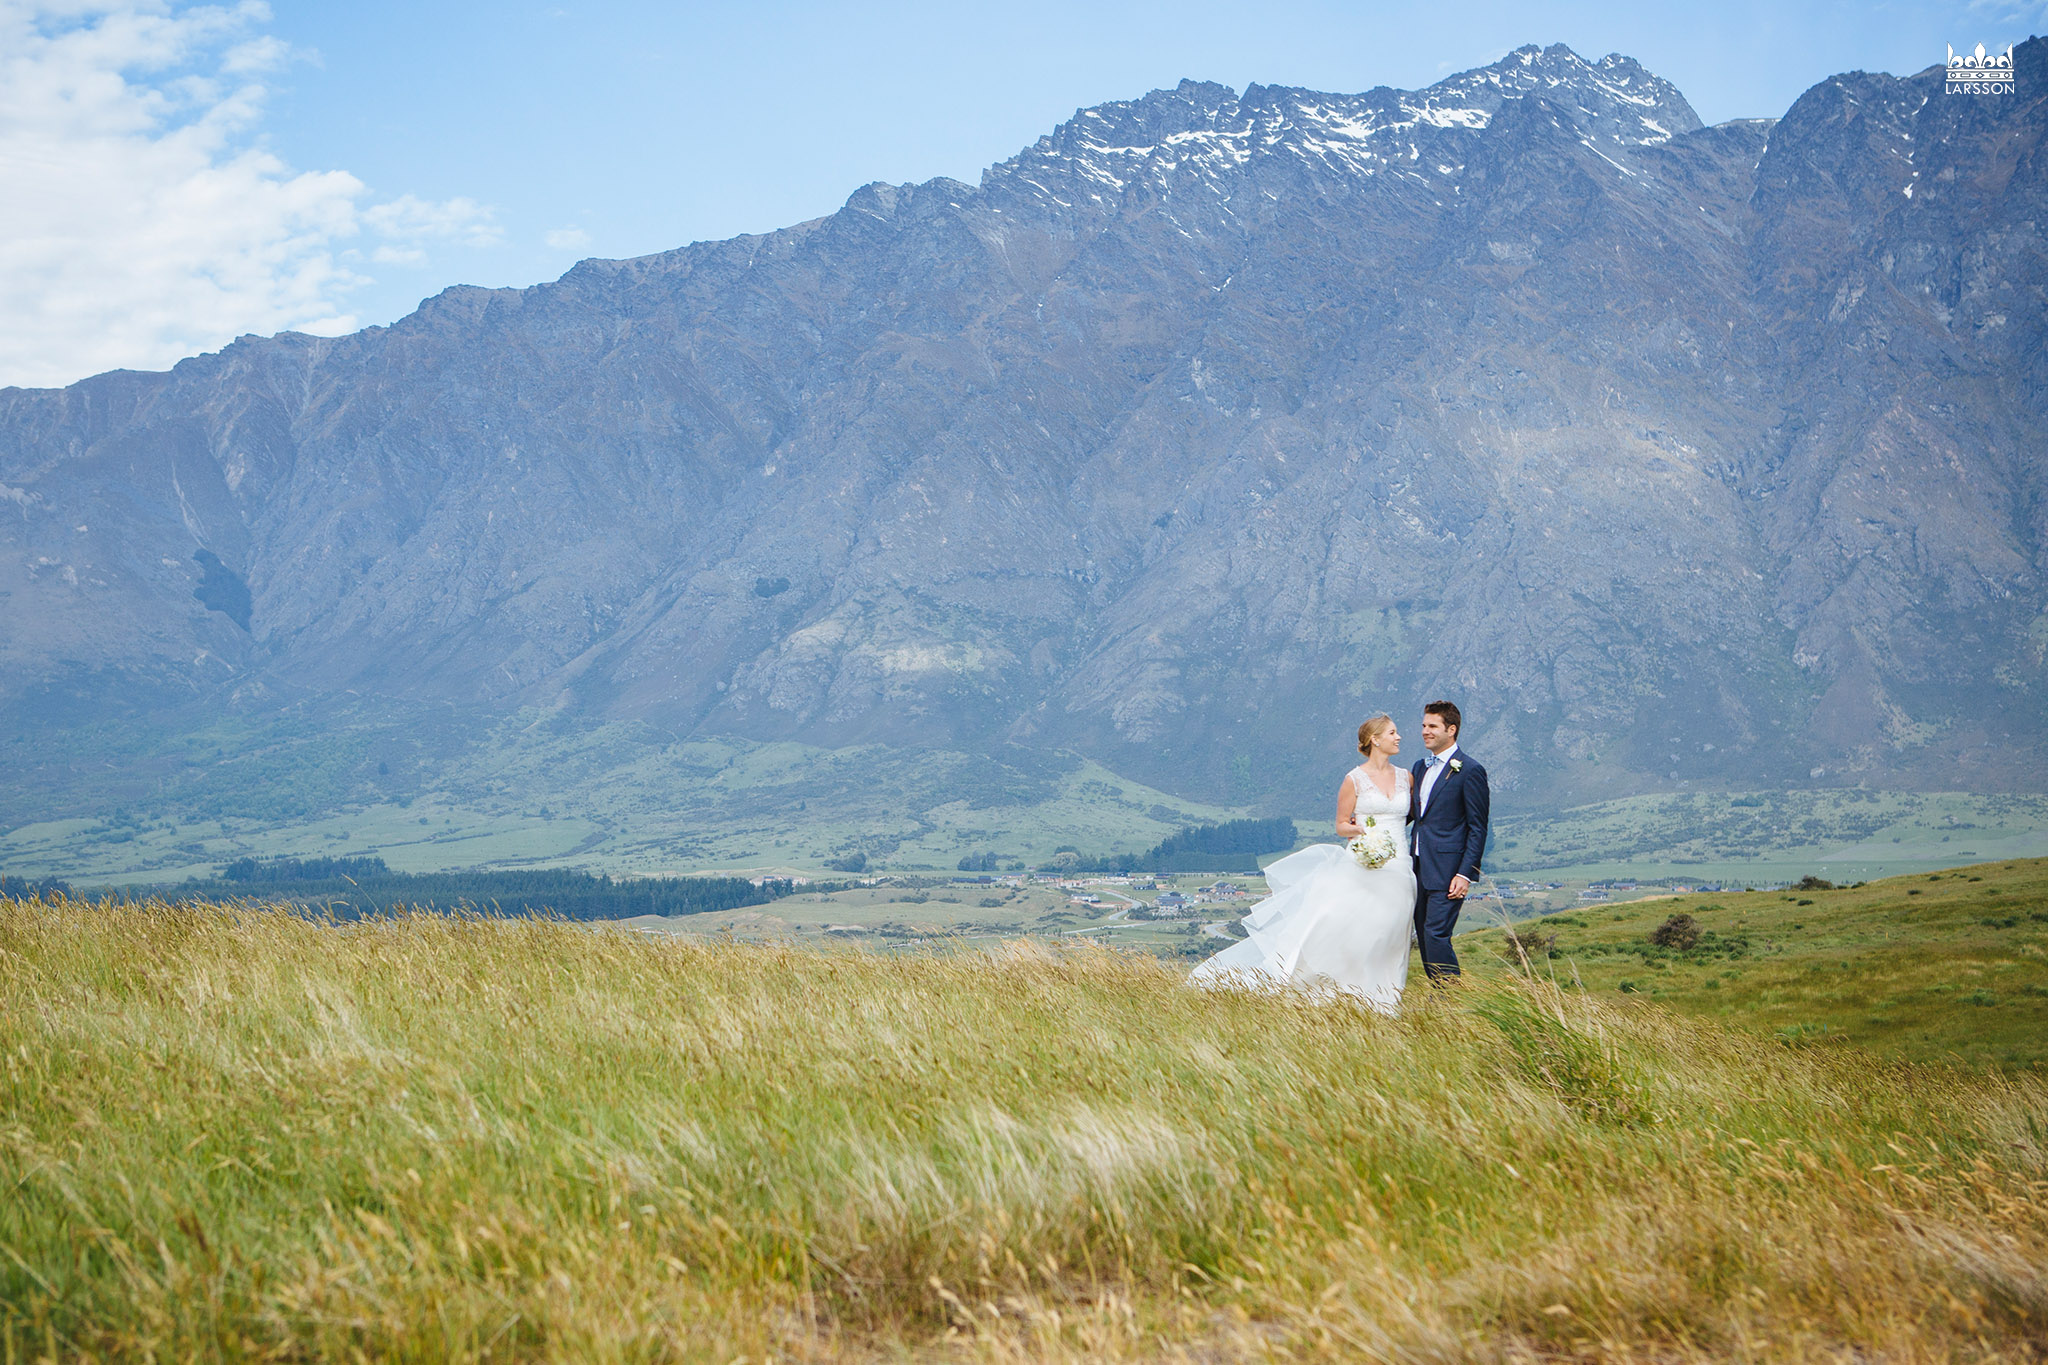 Jacks point wedding photography queenstown